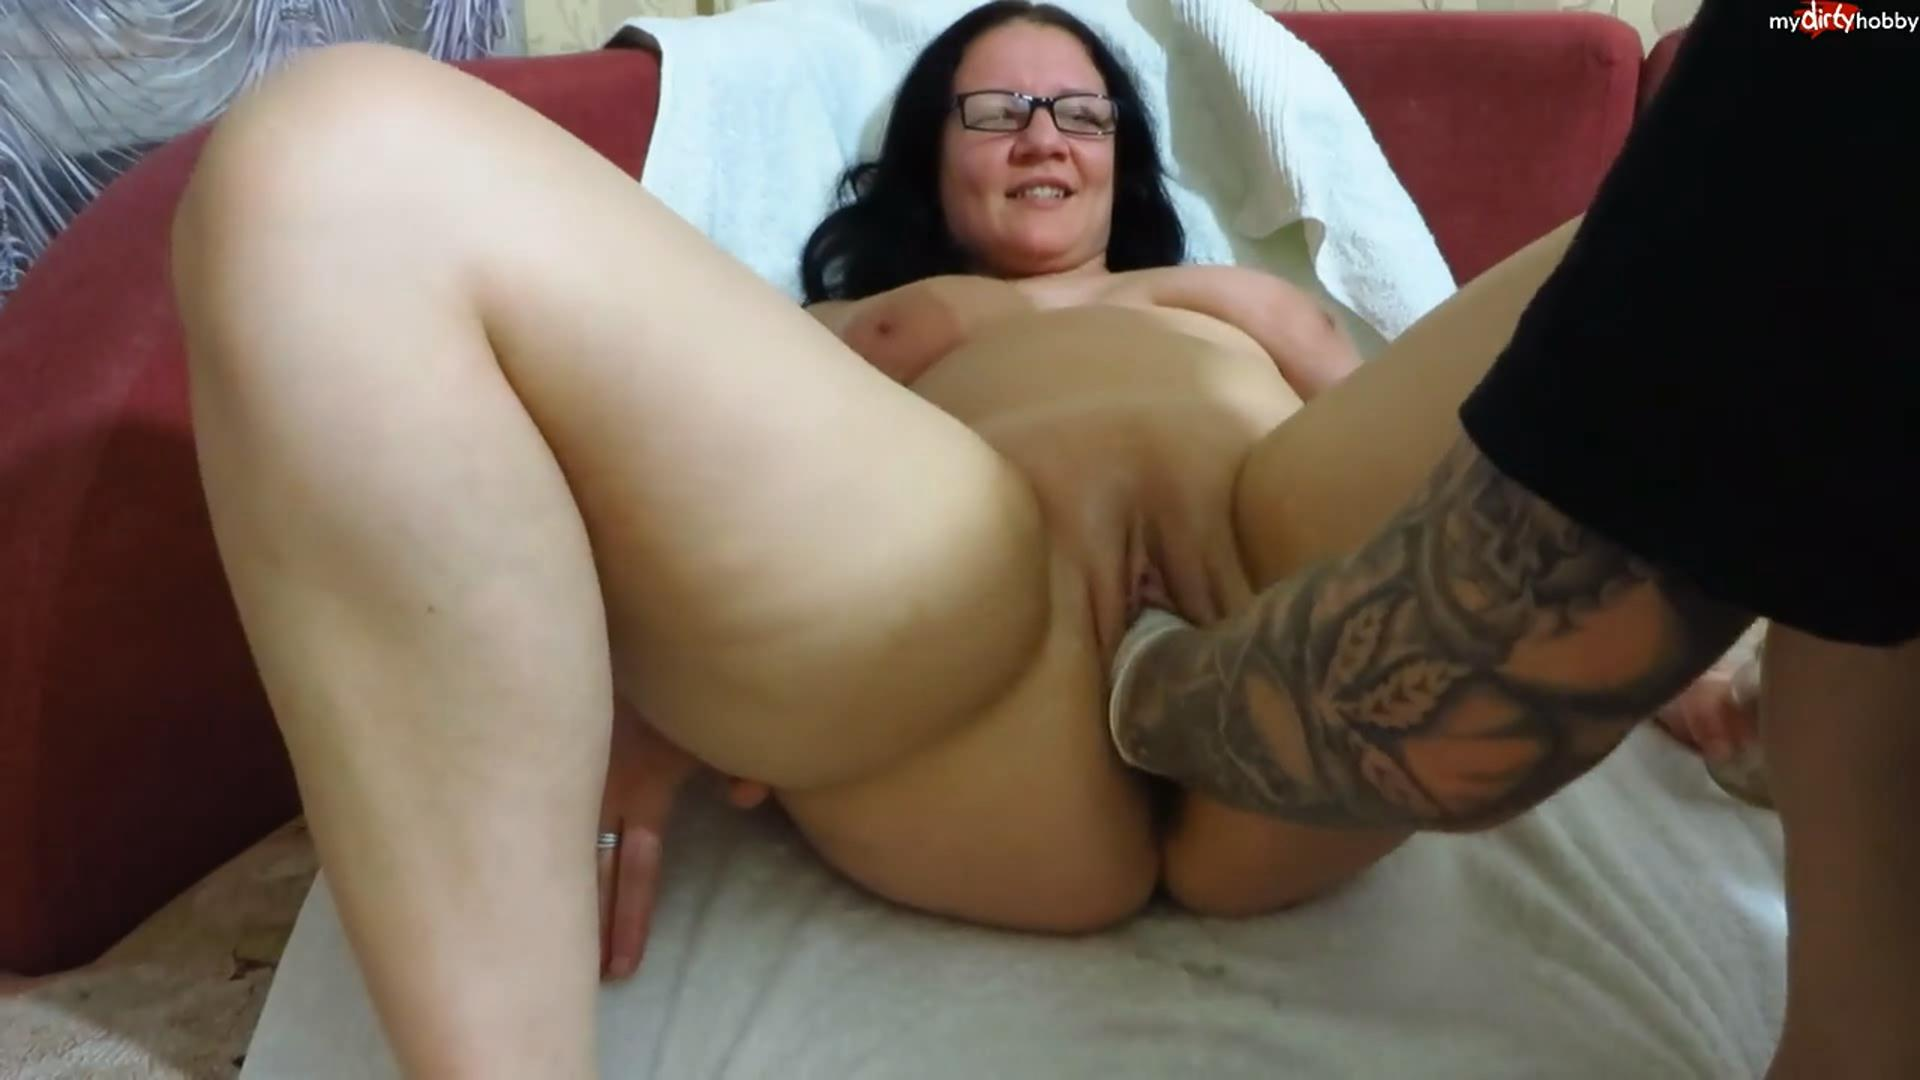 apologise, but, outdoore deepthroat big dick cum in car impossible. Willingly accept